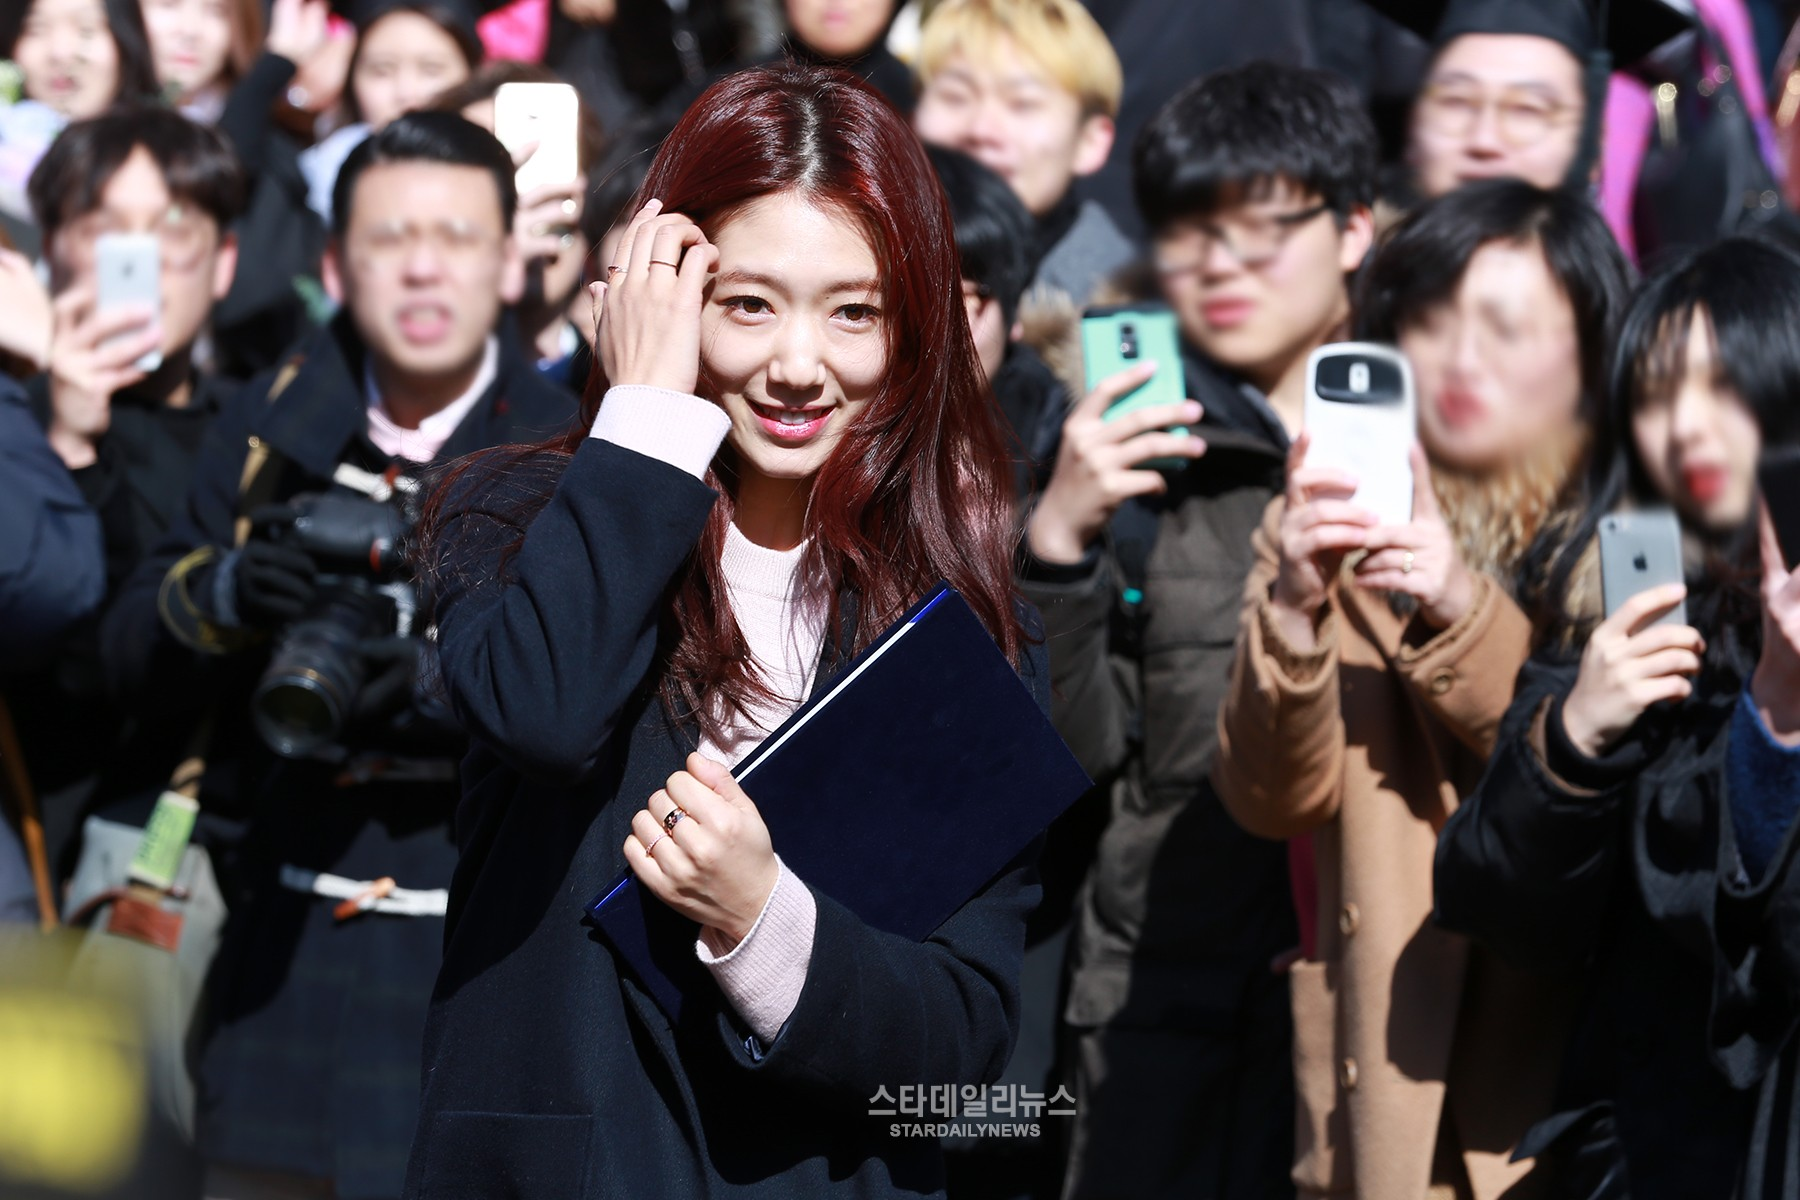 graduation star daily news Park Shin Hye